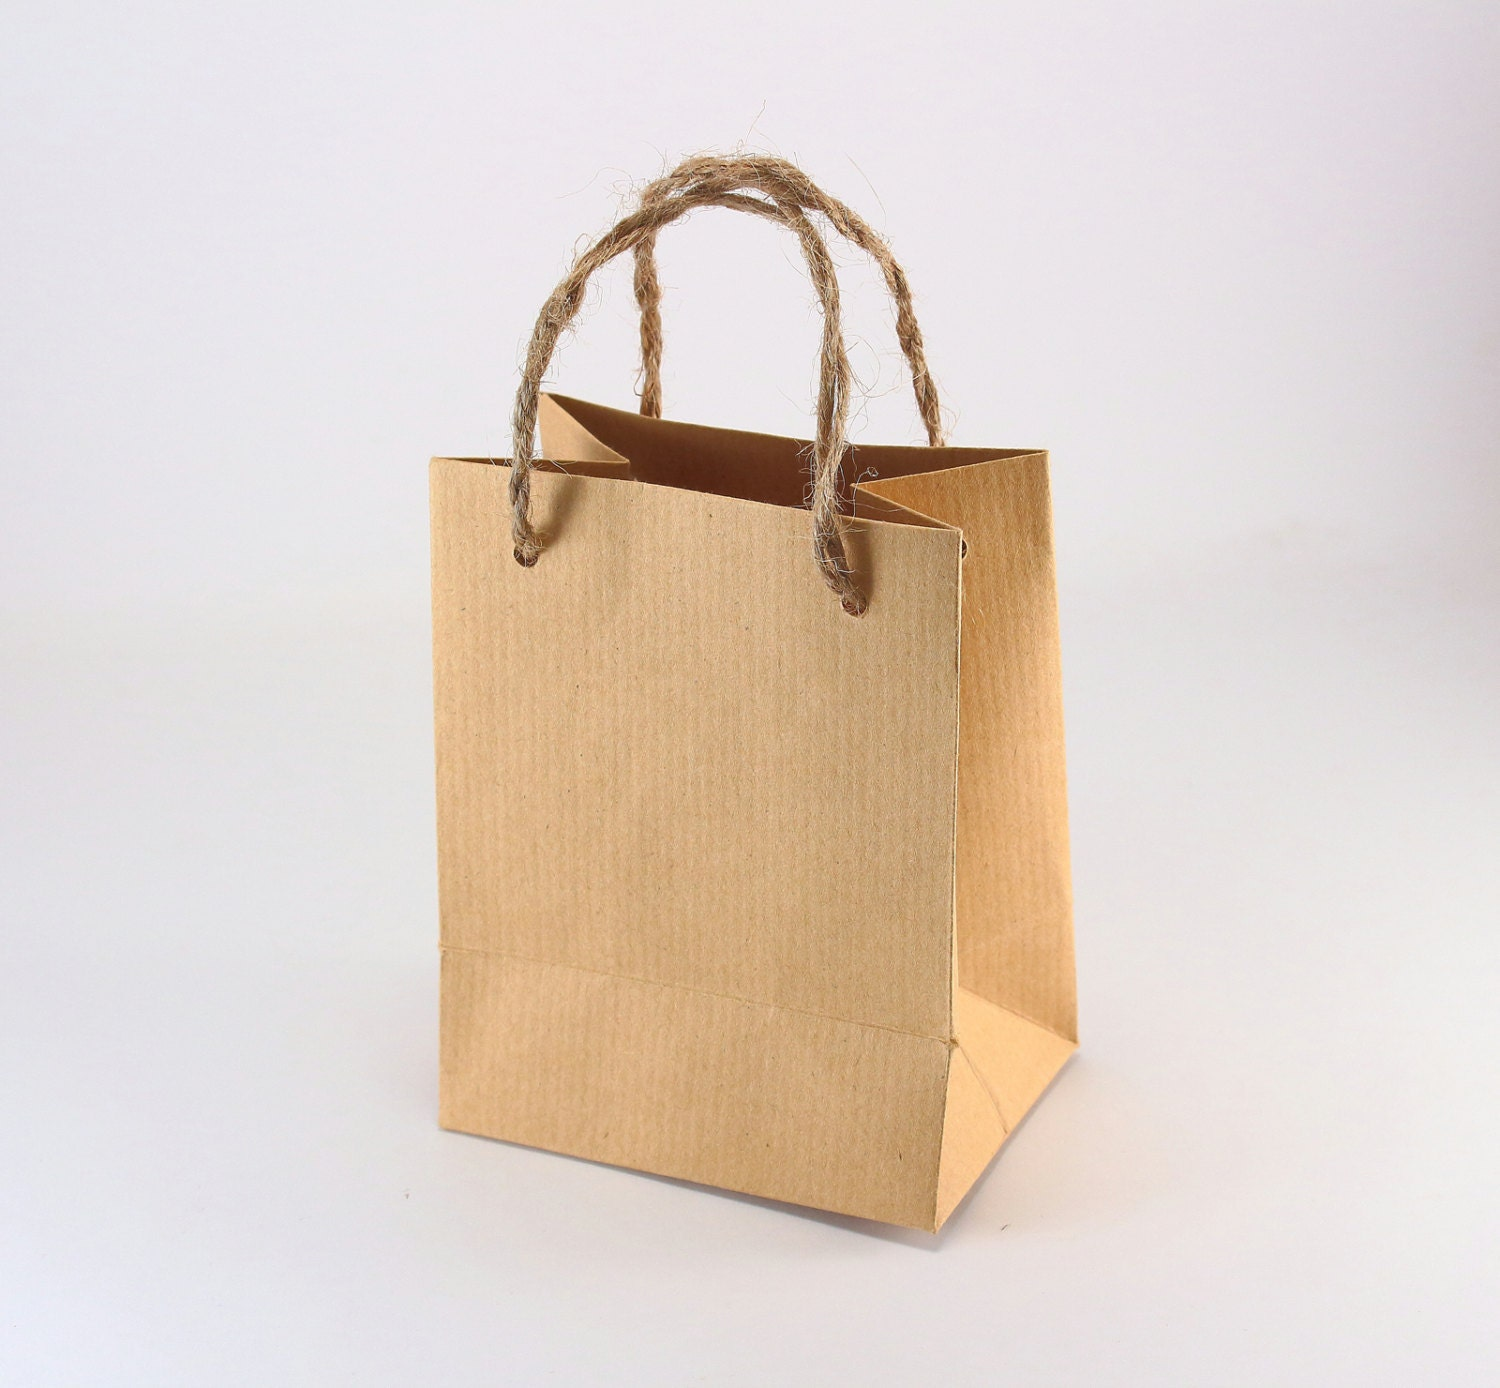 Wedding Gift Bags With Handles : 100 Rustic Wedding Favor Bags w/ Handles Extra Small Kraft